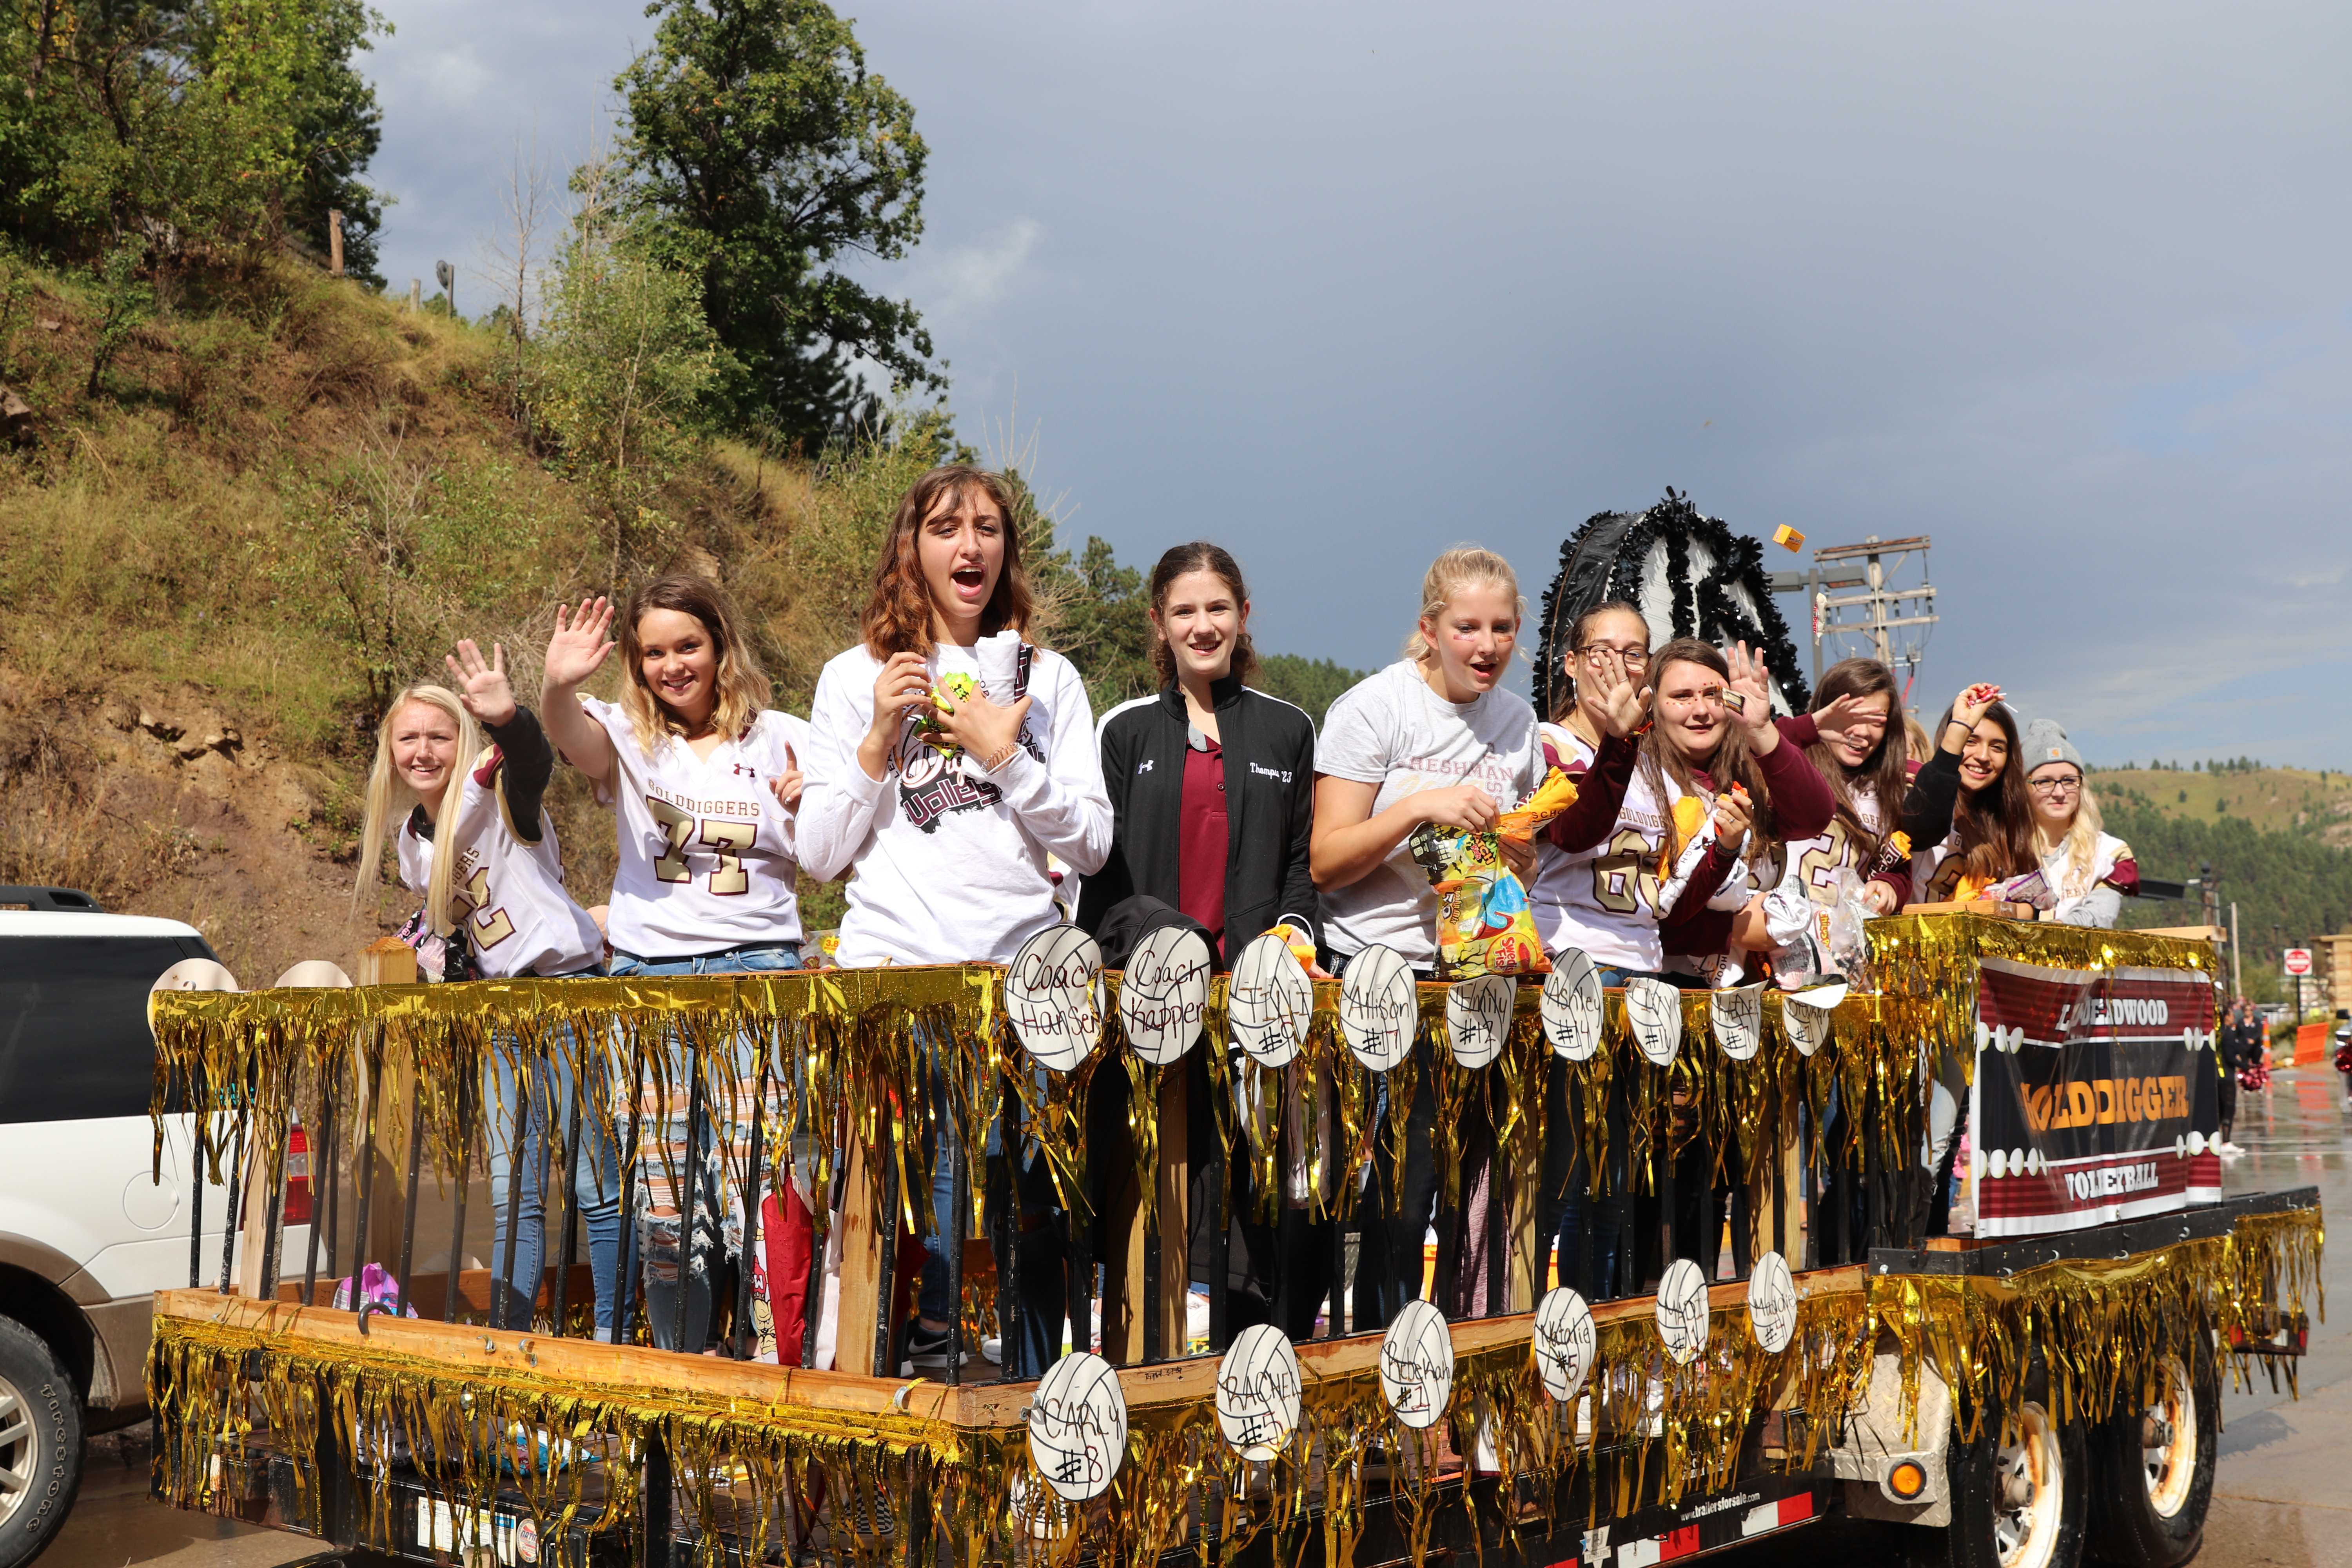 A photo of the girls Volleyball team in a parade.